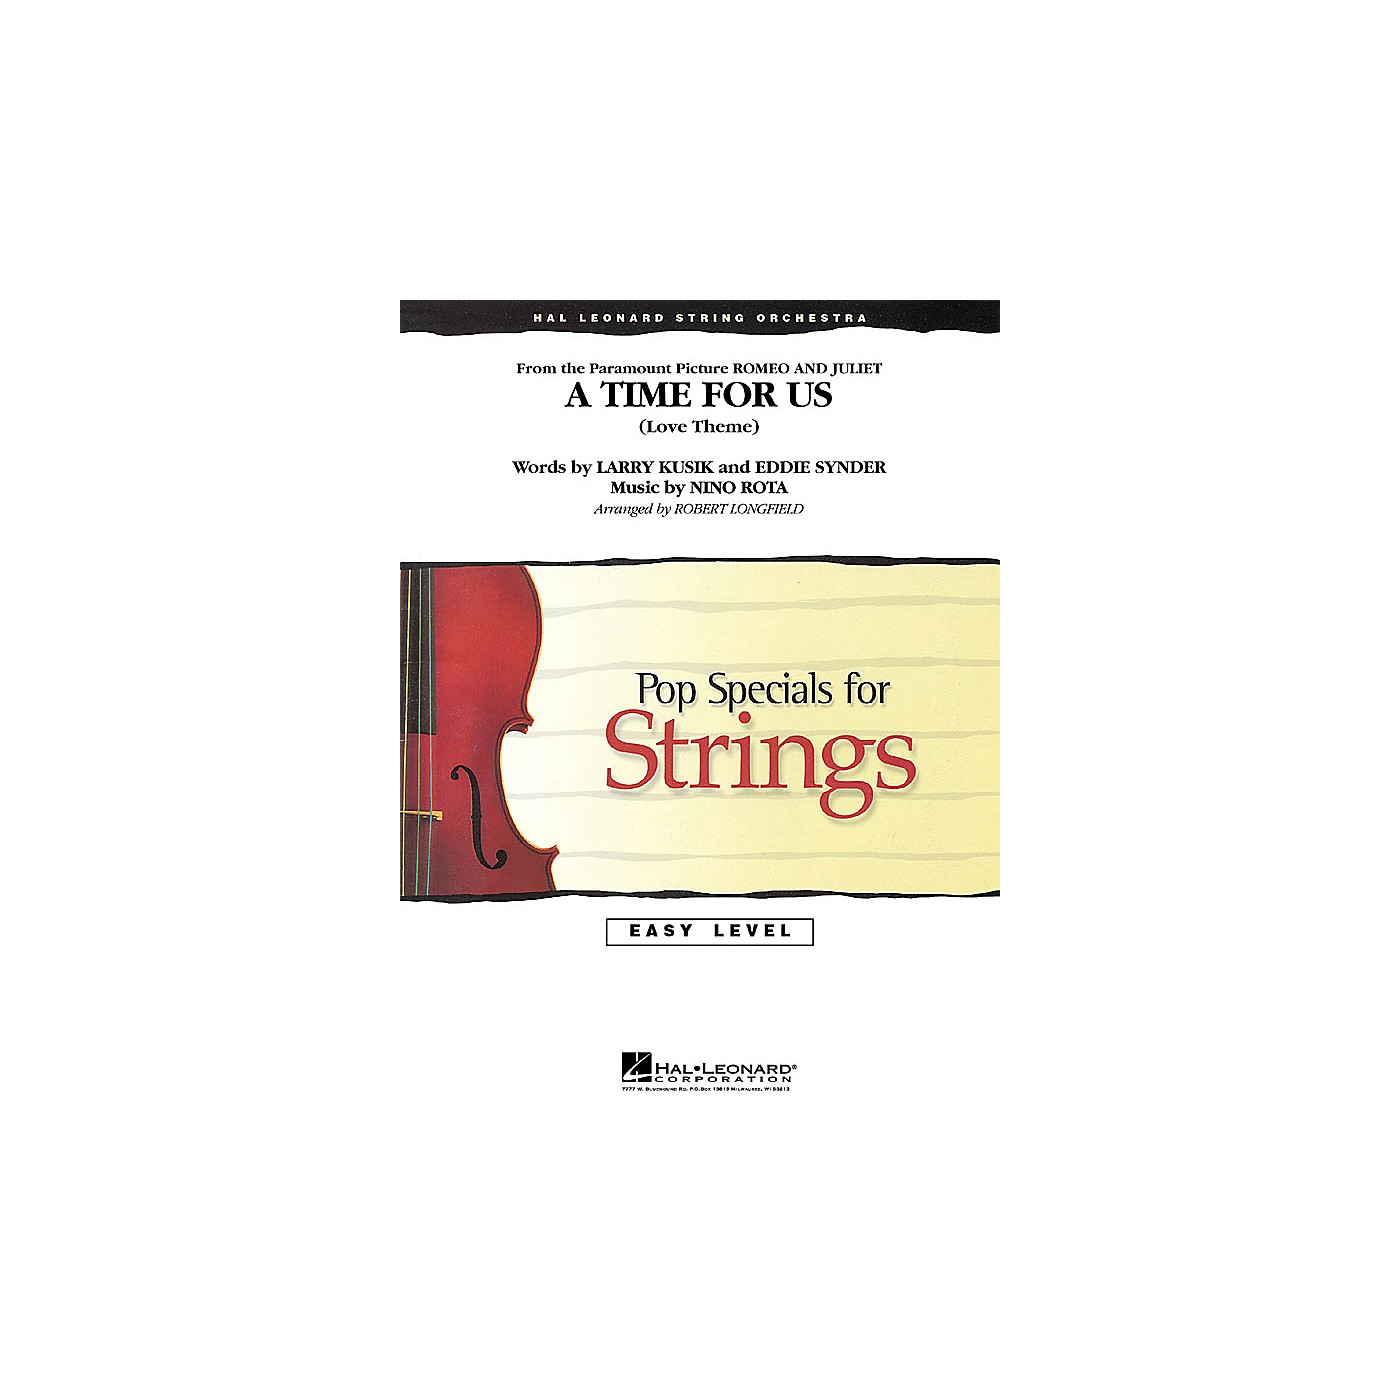 Hal Leonard A Time for Us (from Romeo and Juliet) Easy Pop Specials For Strings Series Arranged by Robert Longfield thumbnail